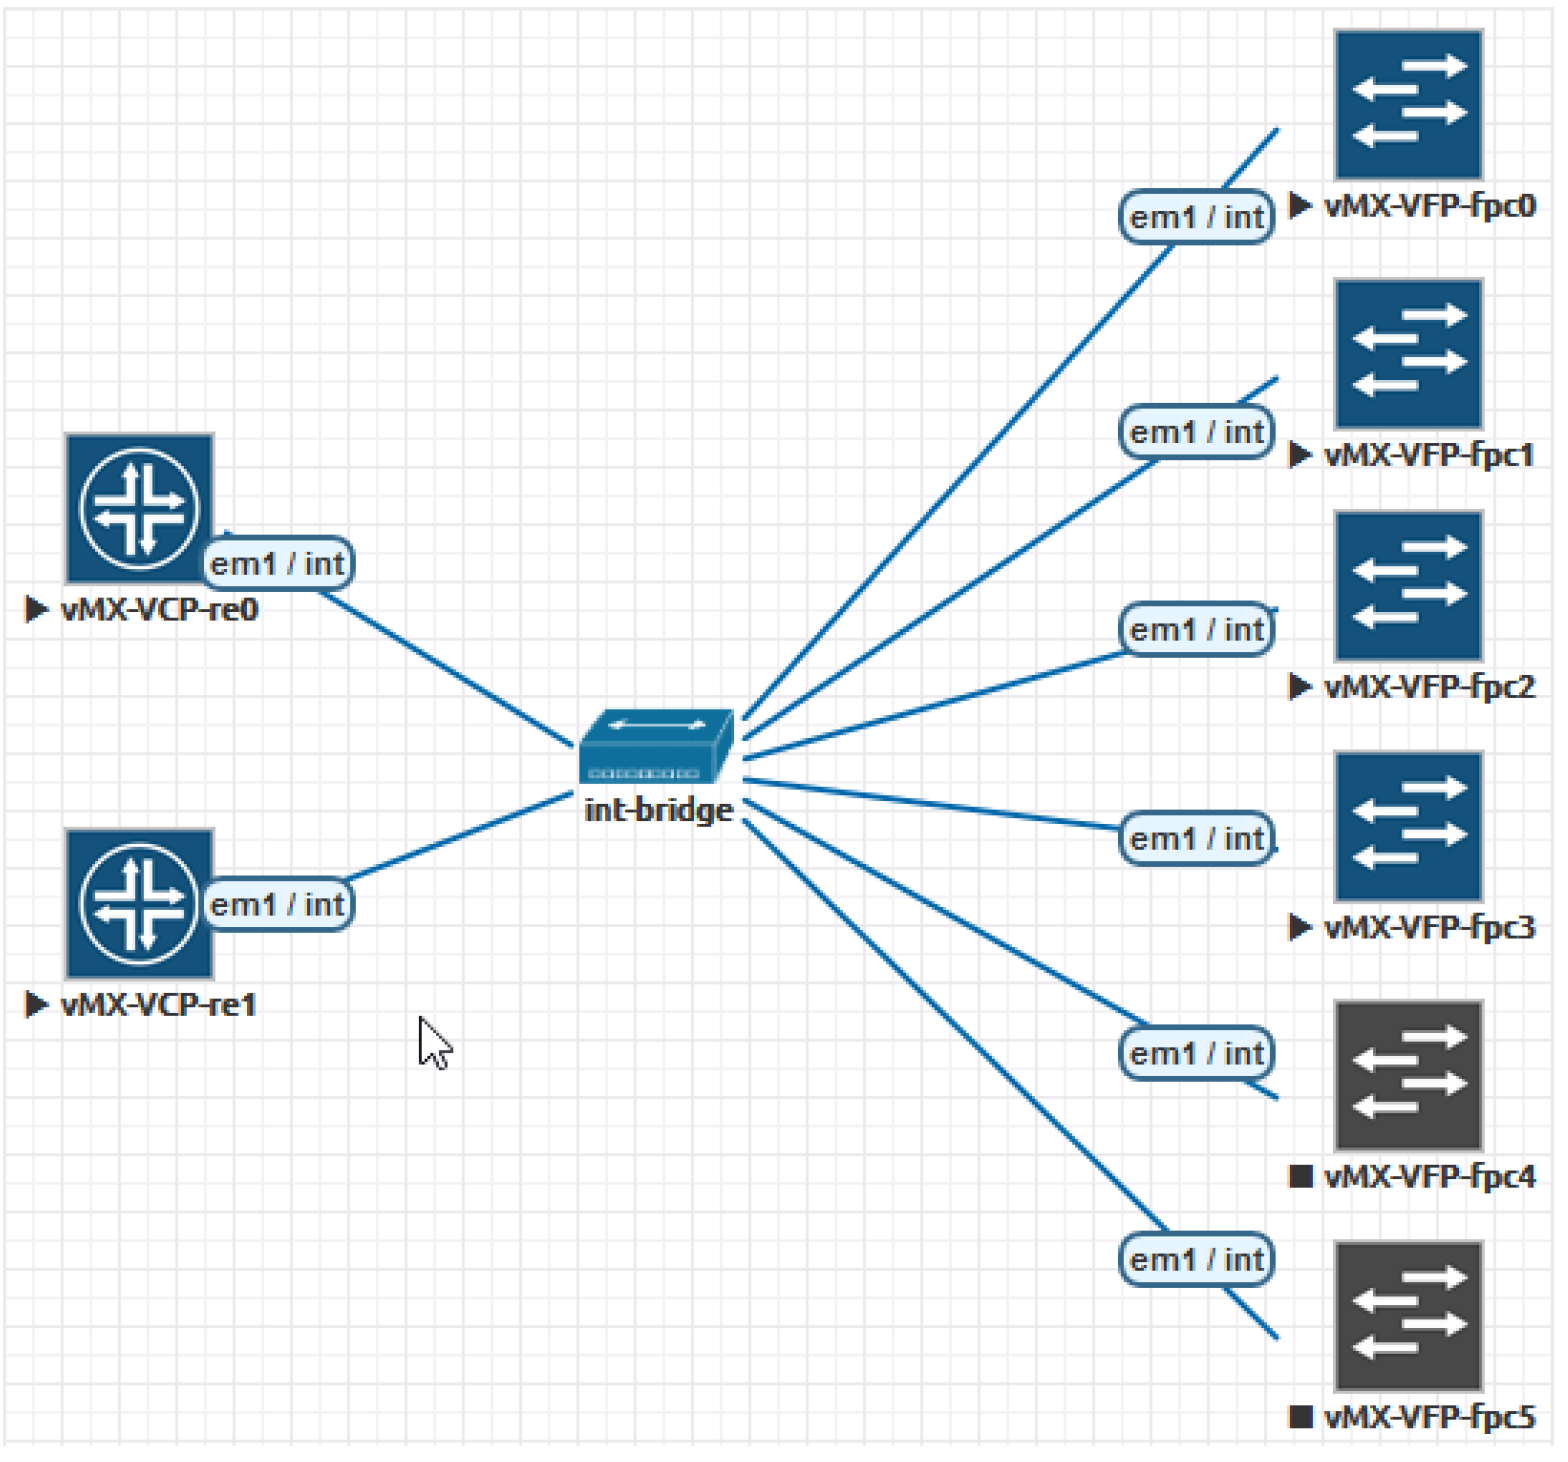 How to deploy vMX with multiple RE's and multiple FPC's in